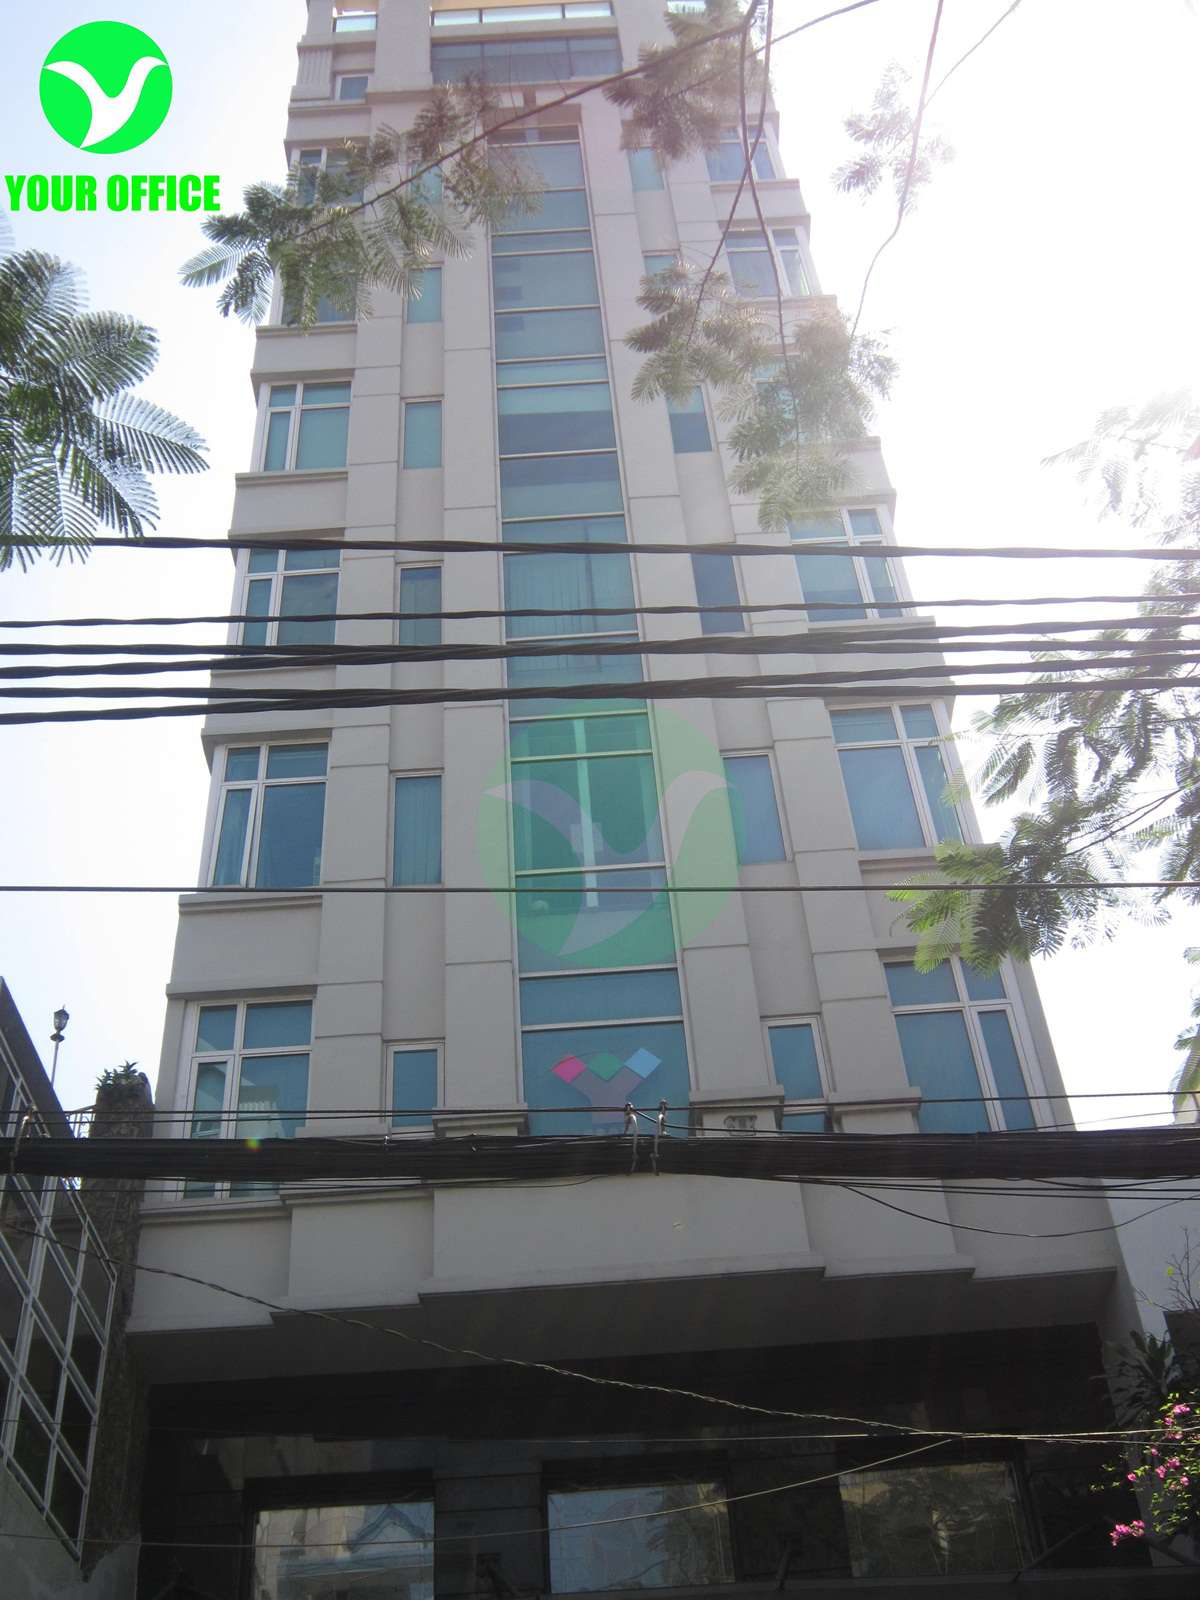 HA VINH BUILDING